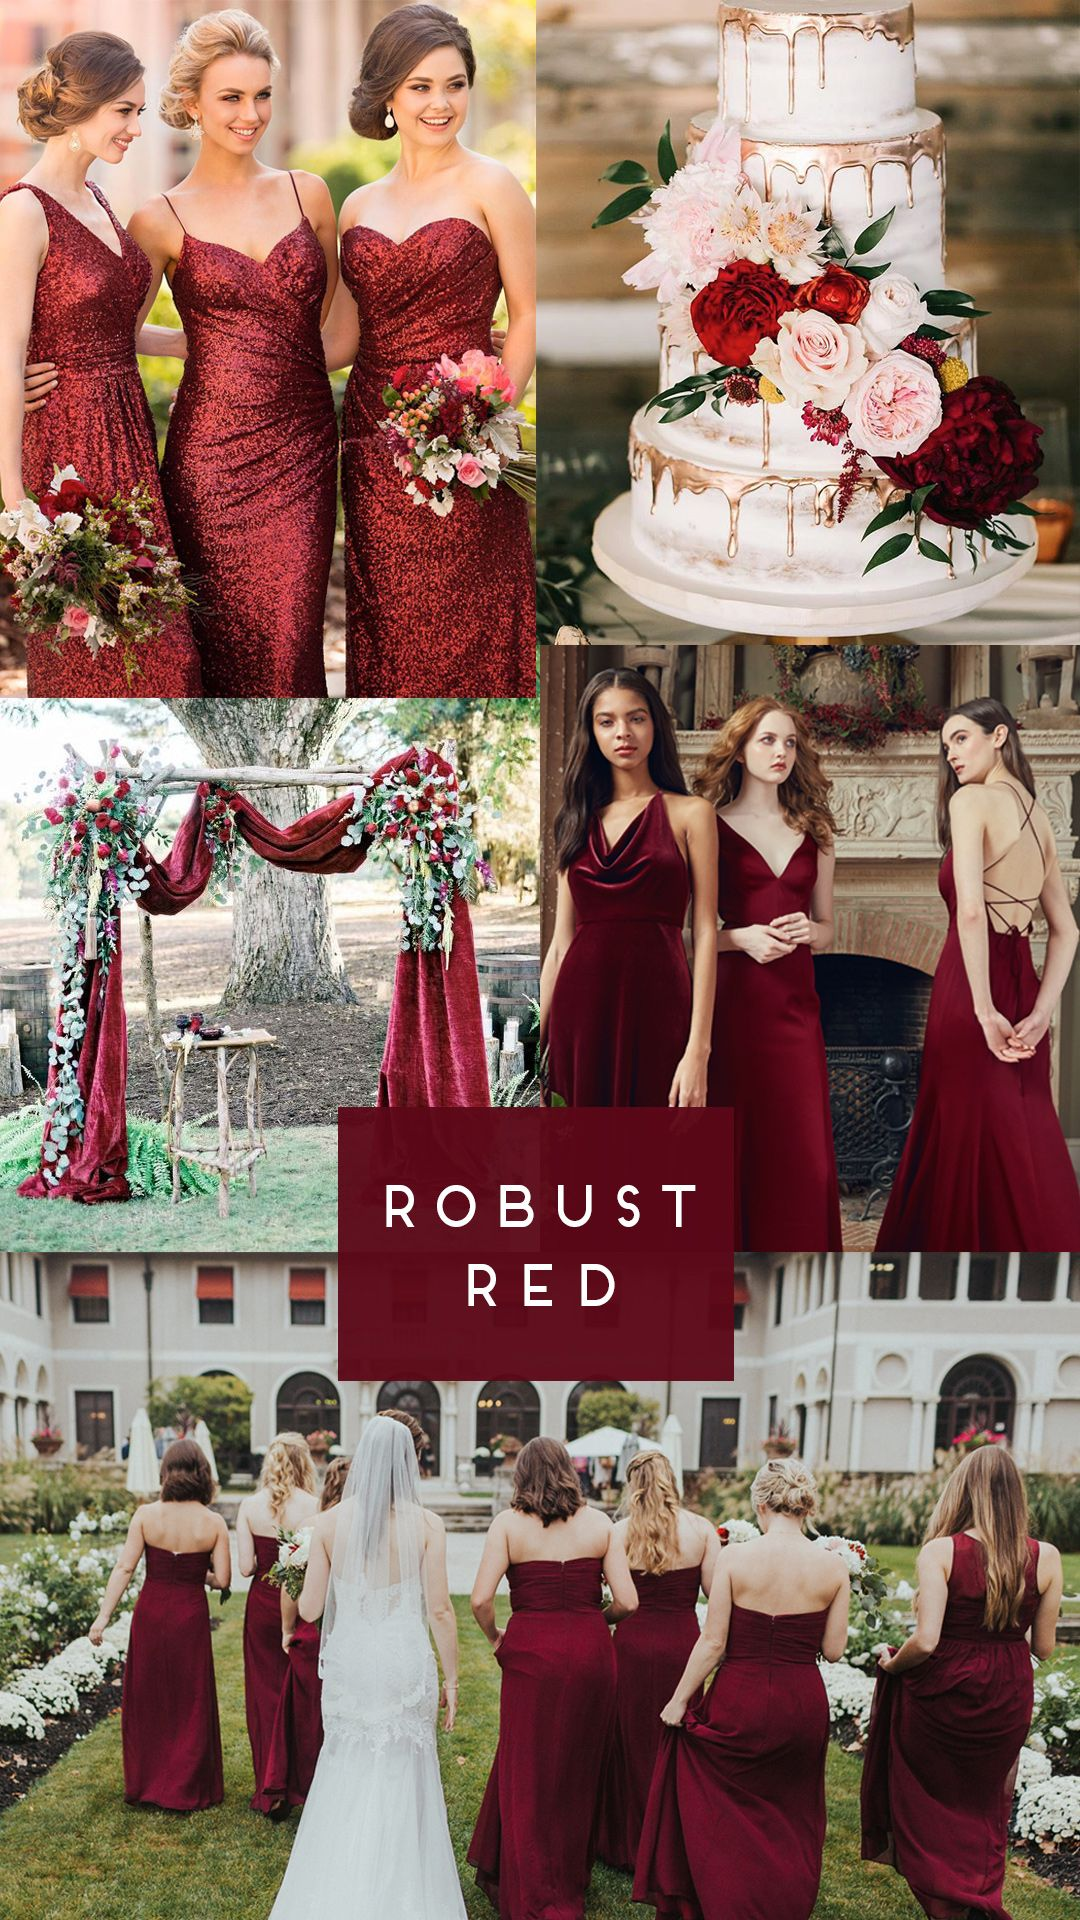 Robust Red Bridesmaid Dresses For Your Fall Wedding Dark Red Bridesmaid Dresses Dark Red Wedding Red Bridesmaid Dresses